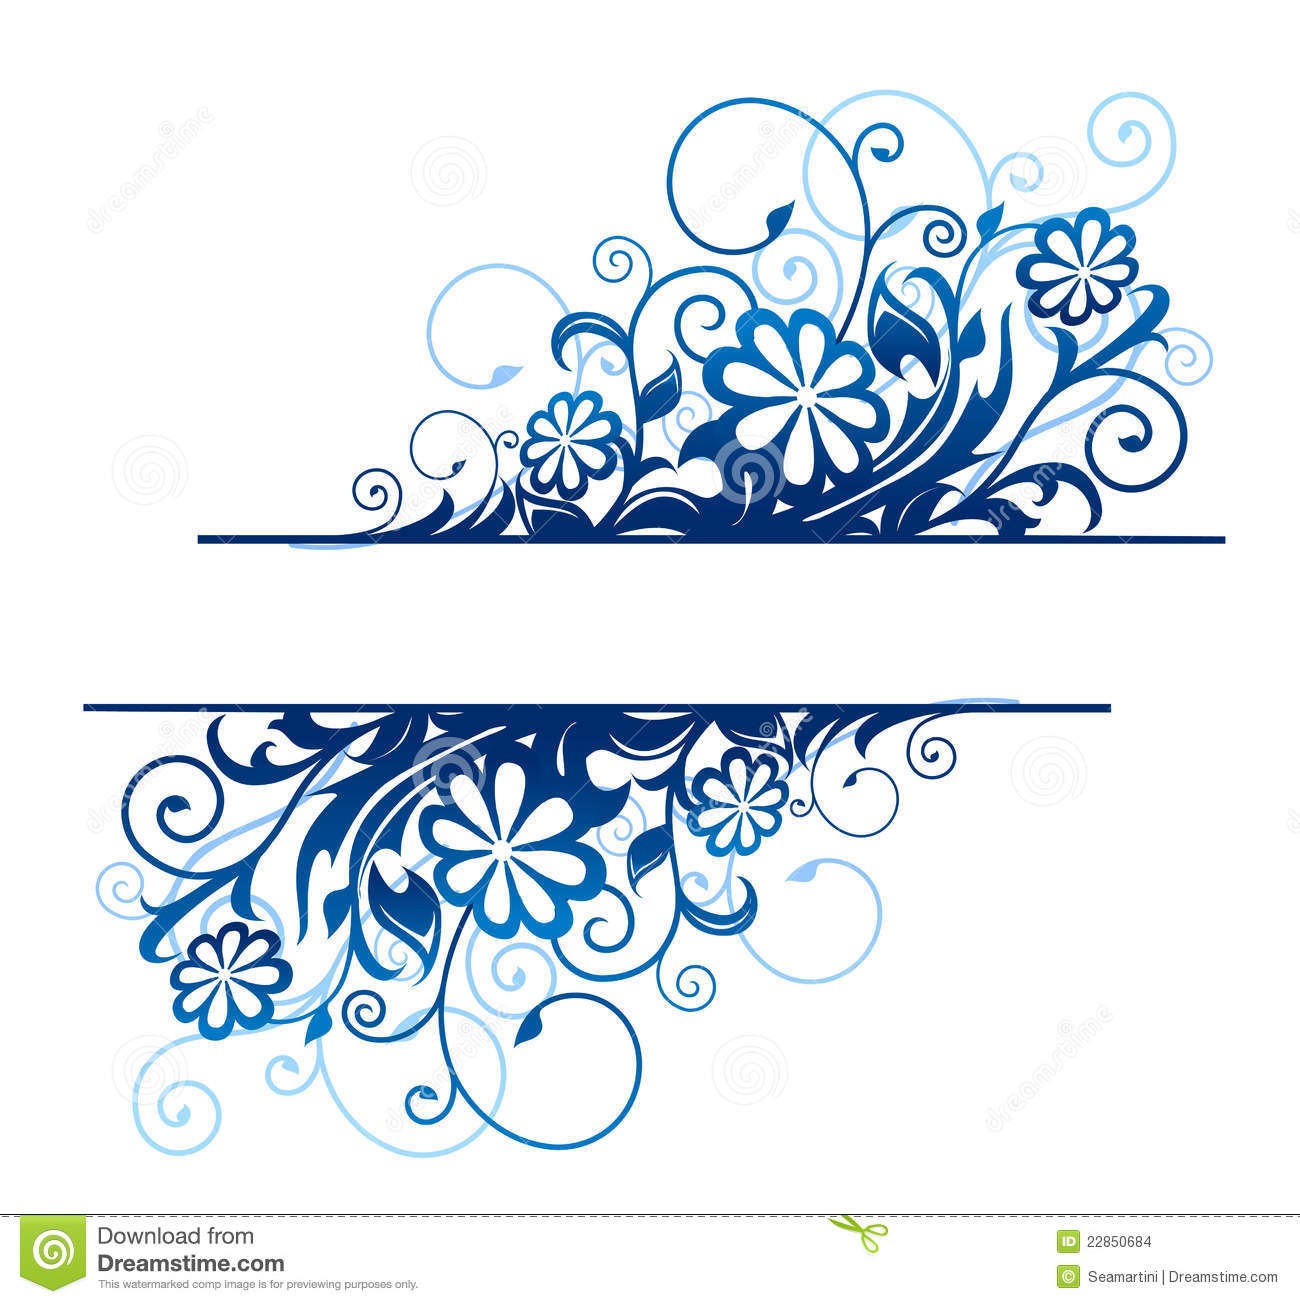 Blue floral border stock vector. Illustration of heading - 22850684